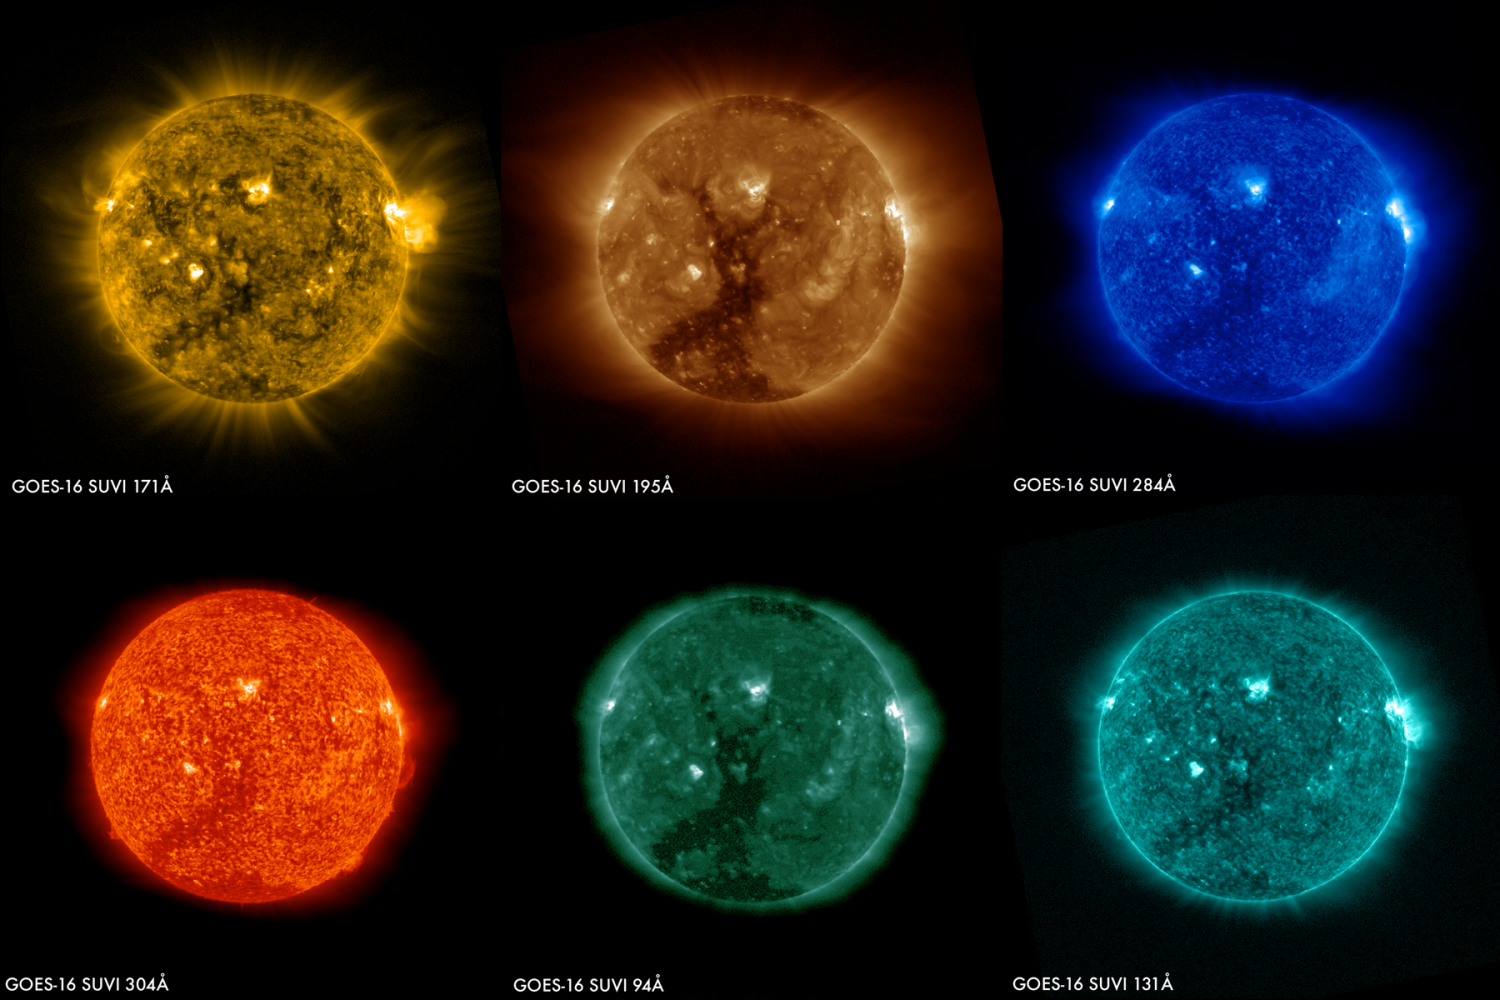 images of the sun from the goes 16 satellite